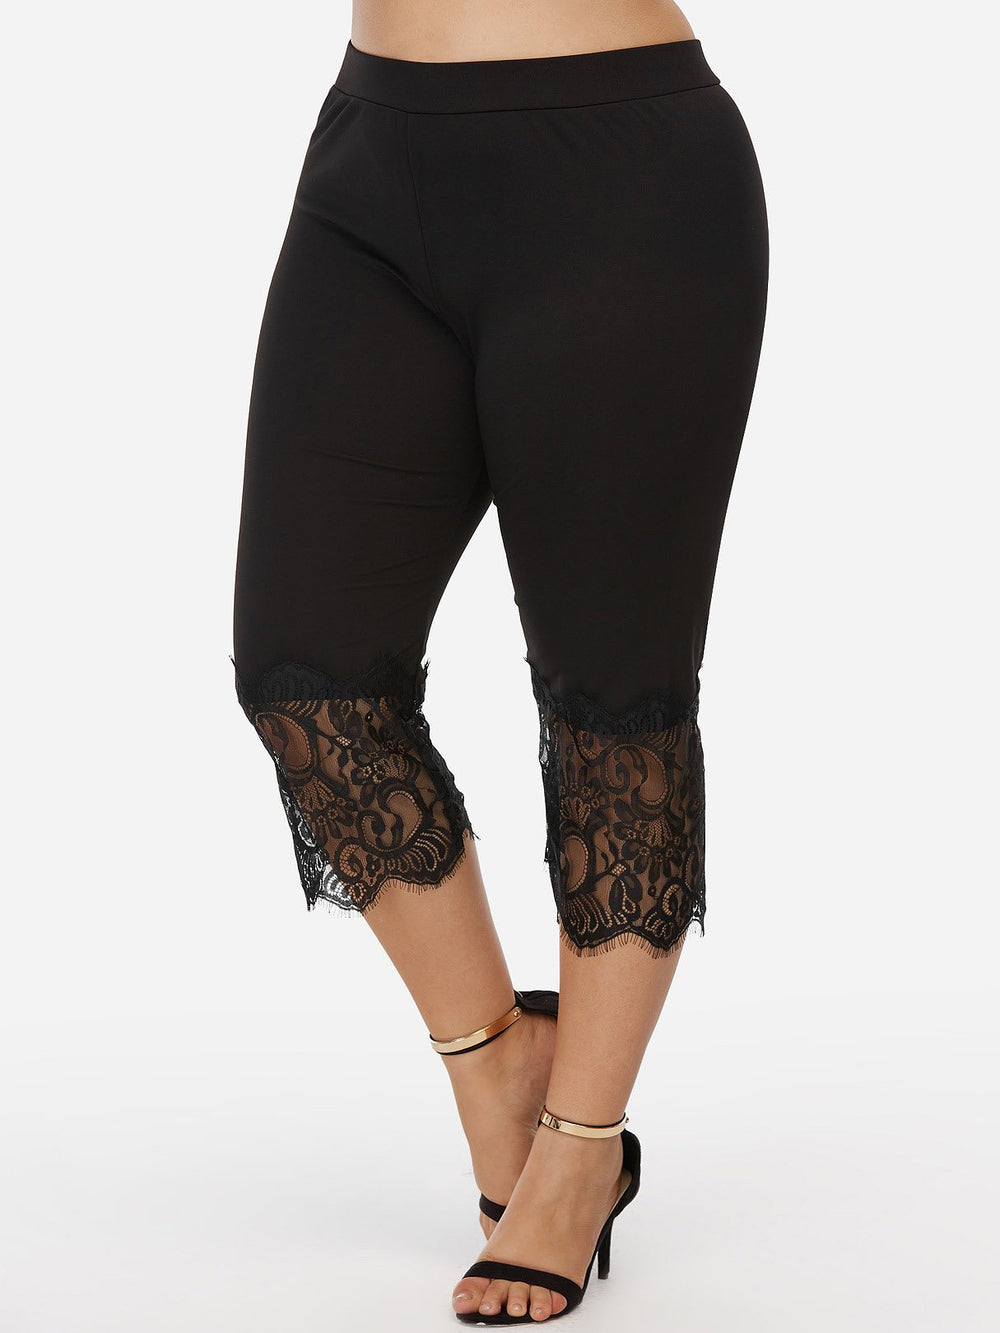 Womens Black Plus Size Bottoms